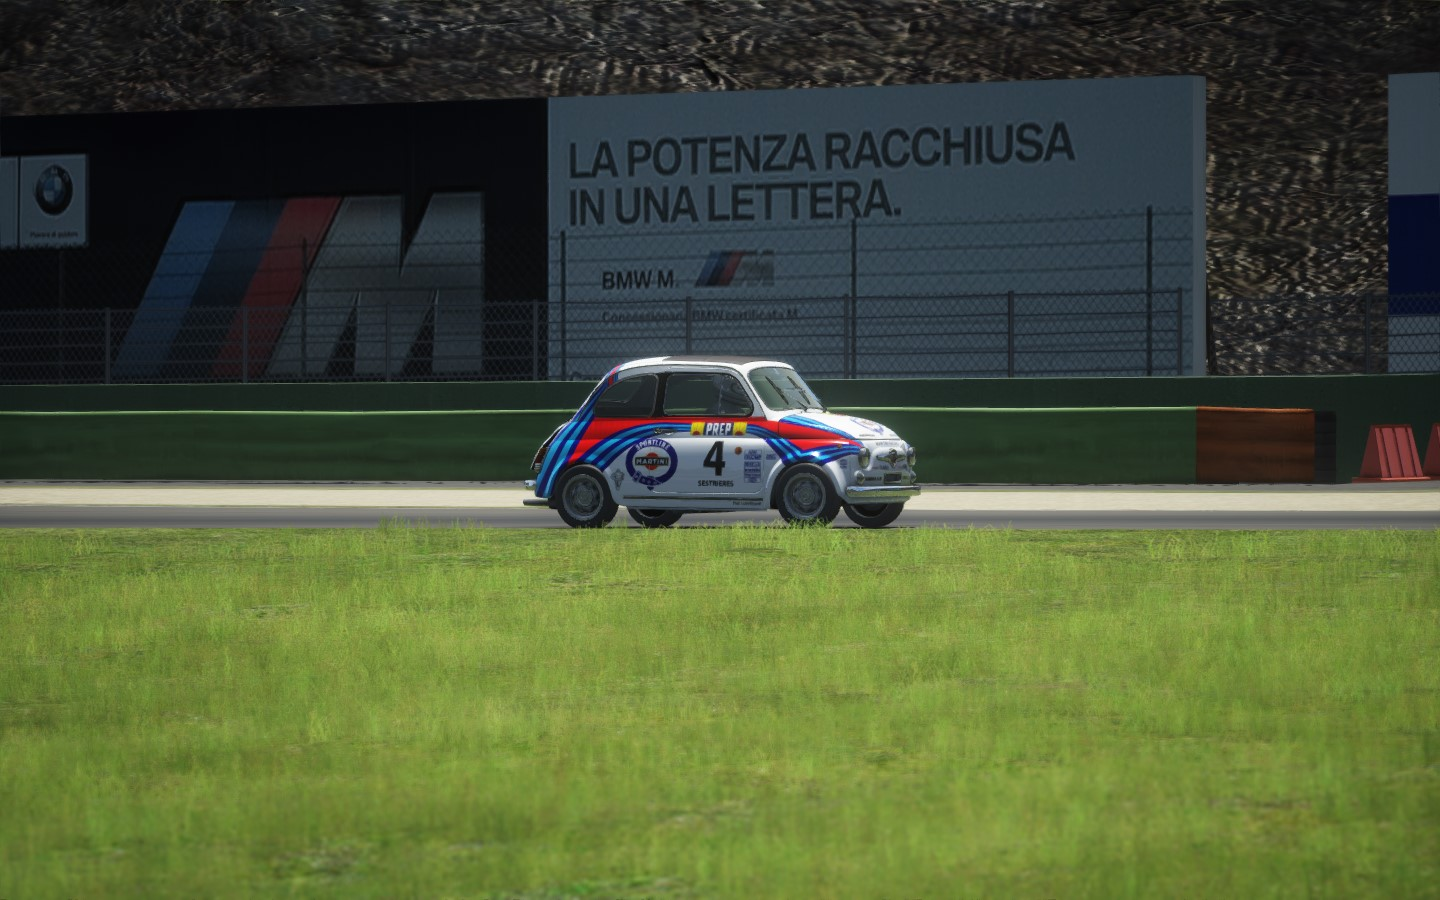 Screenshot_ks_abarth_595ss_ks_vallelunga_22-4-116-22-11-27.jpg